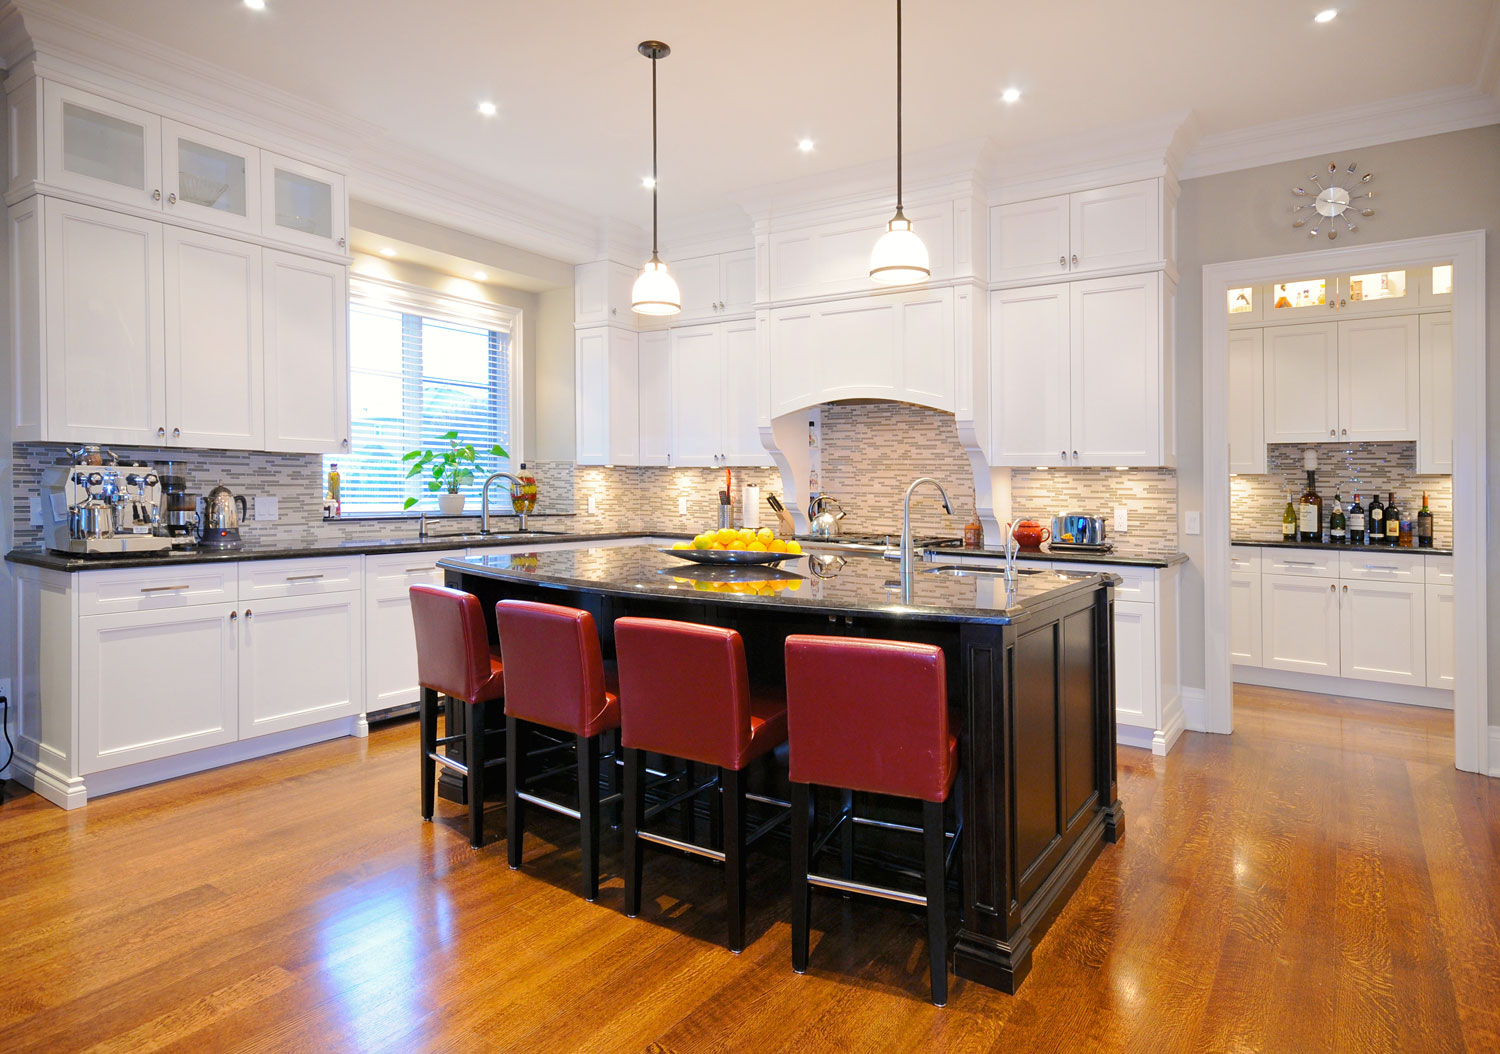 Laurel etobicoke toronto custom kitchen and bathroom for Kitchen cabinets toronto